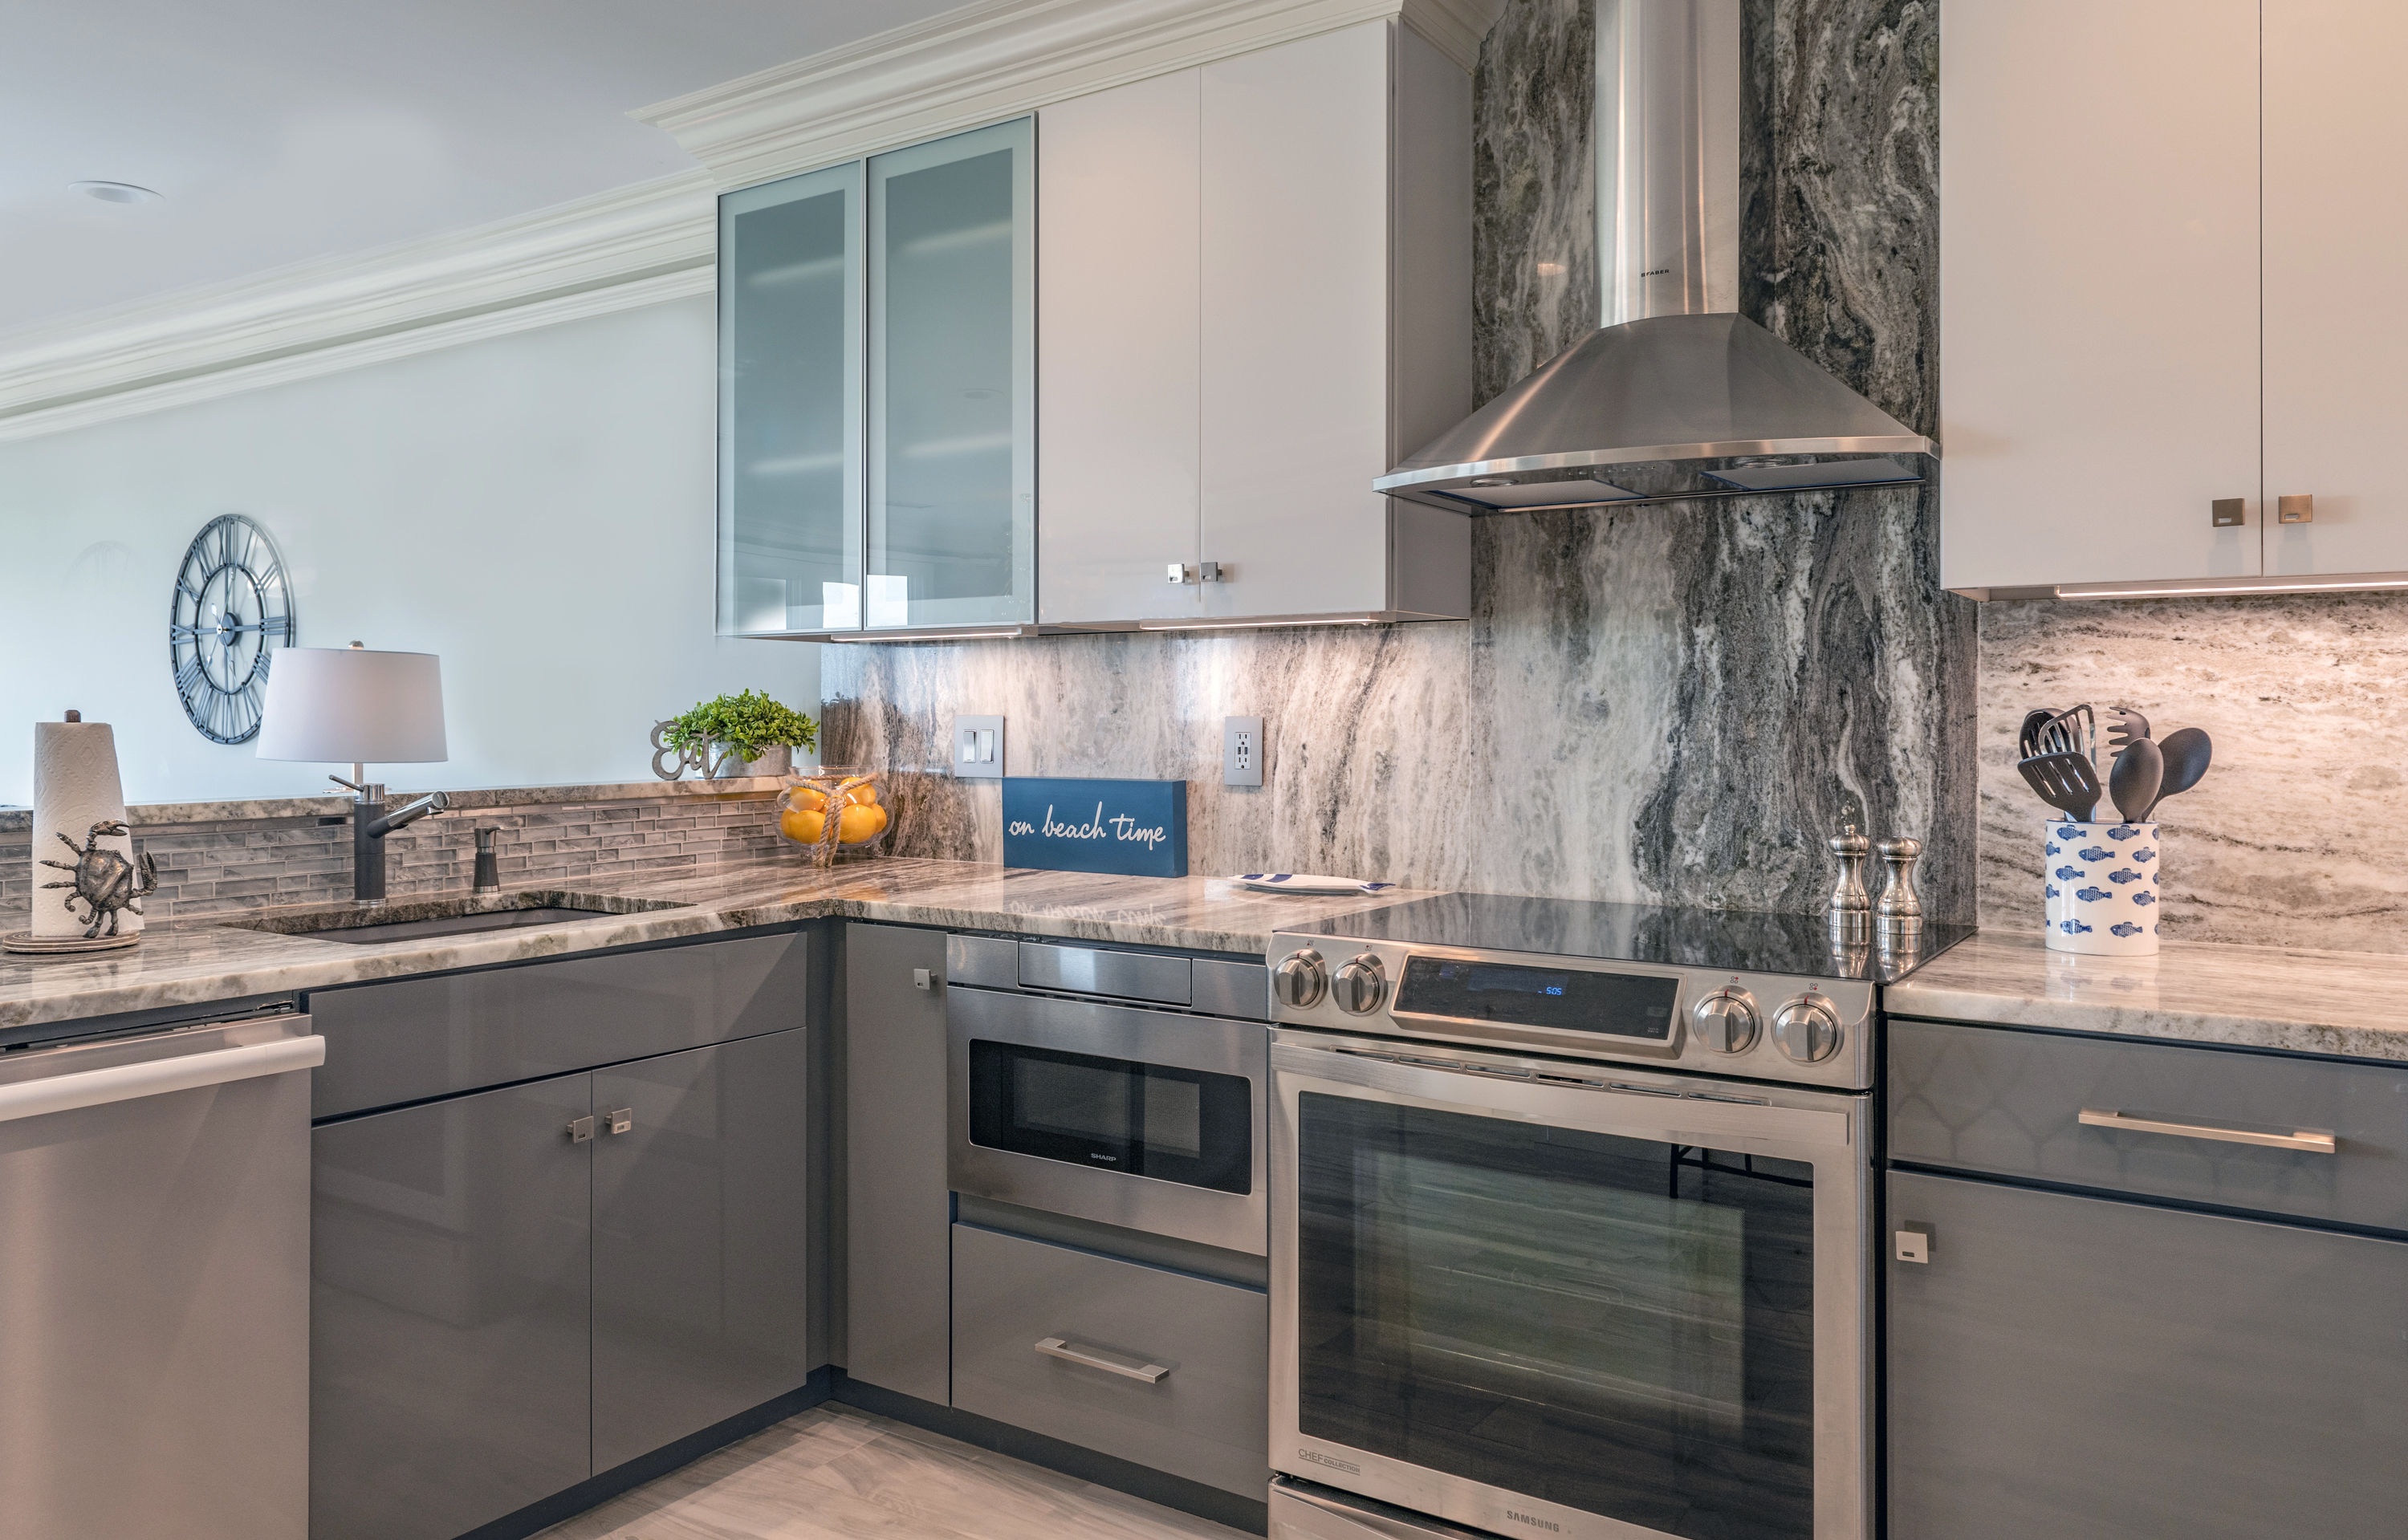 Bright and clean kitchen, open to living areas. Great for entertaining.